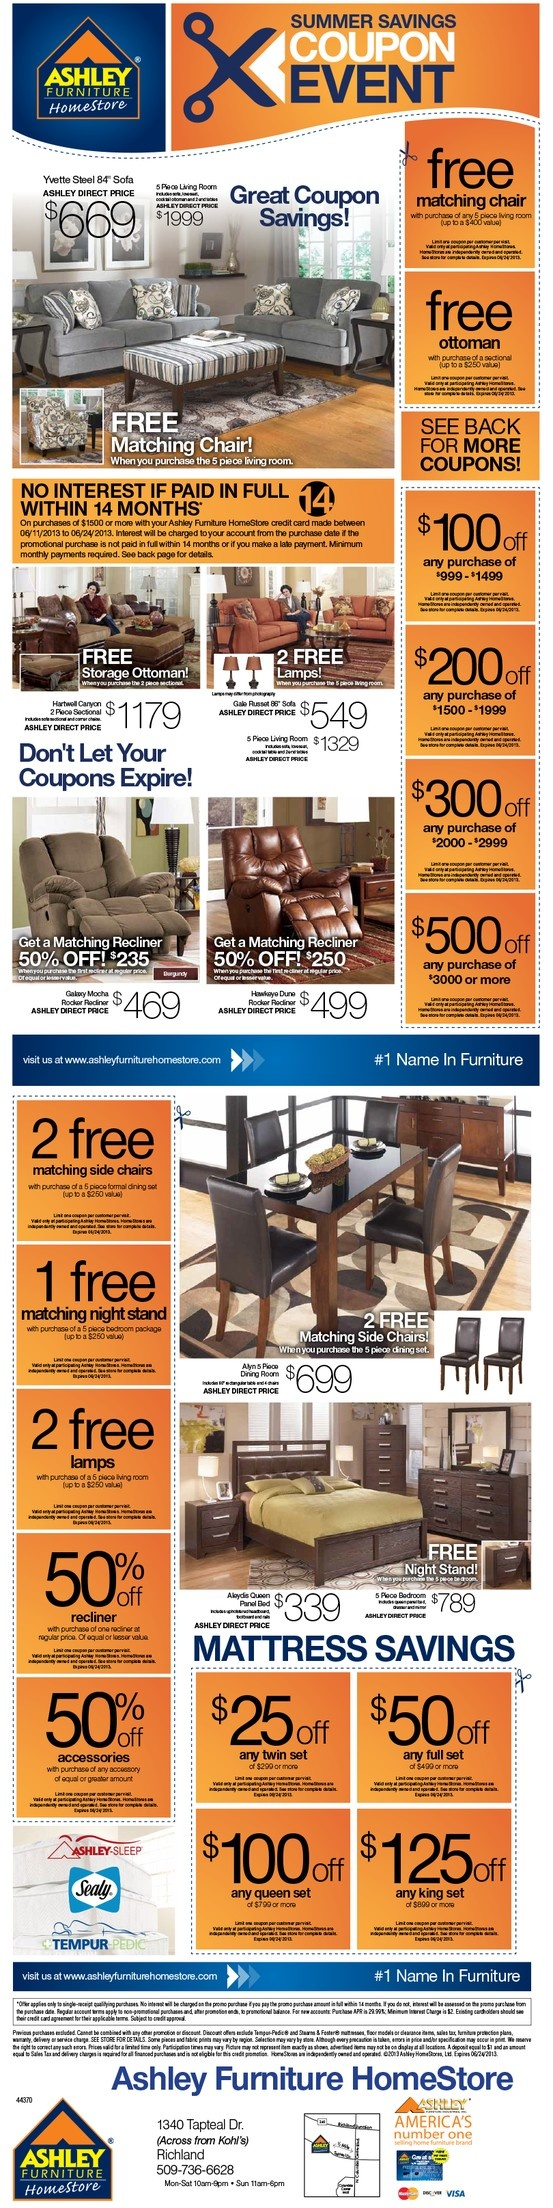 Ashley furniture discount coupons online